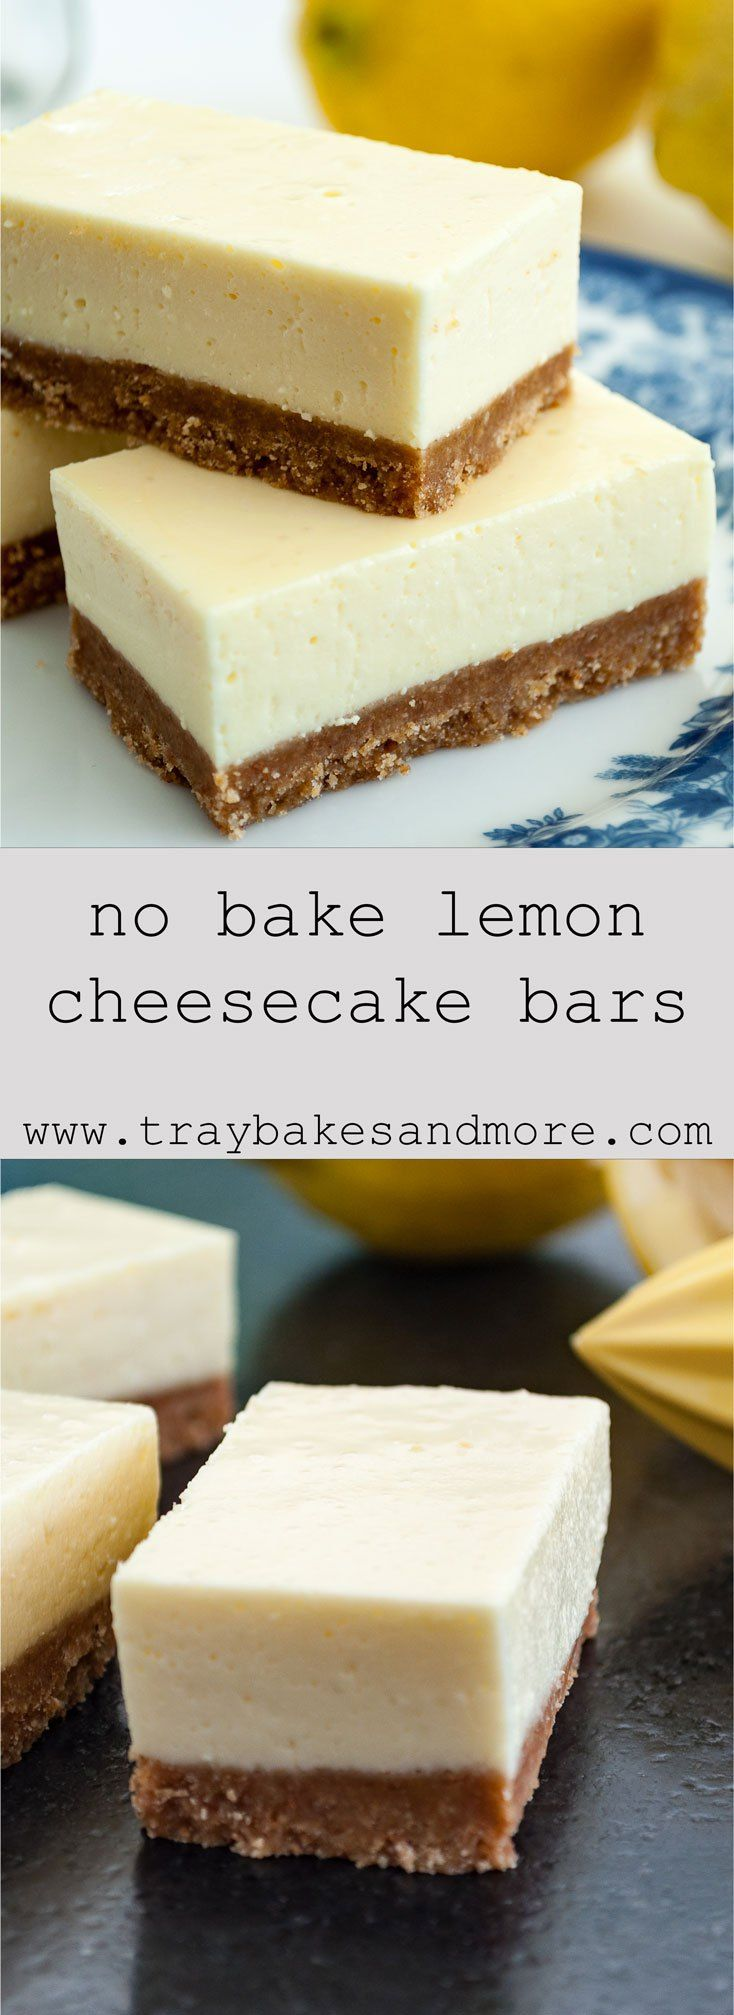 Smooth And Tangy No Bake Lemon Cheesecake Bars A Real Retro Recipe With Cream Cheese Lemo Lemon Cheesecake Bars Cream Cheese Recipes Lemon Cheesecake Recipes